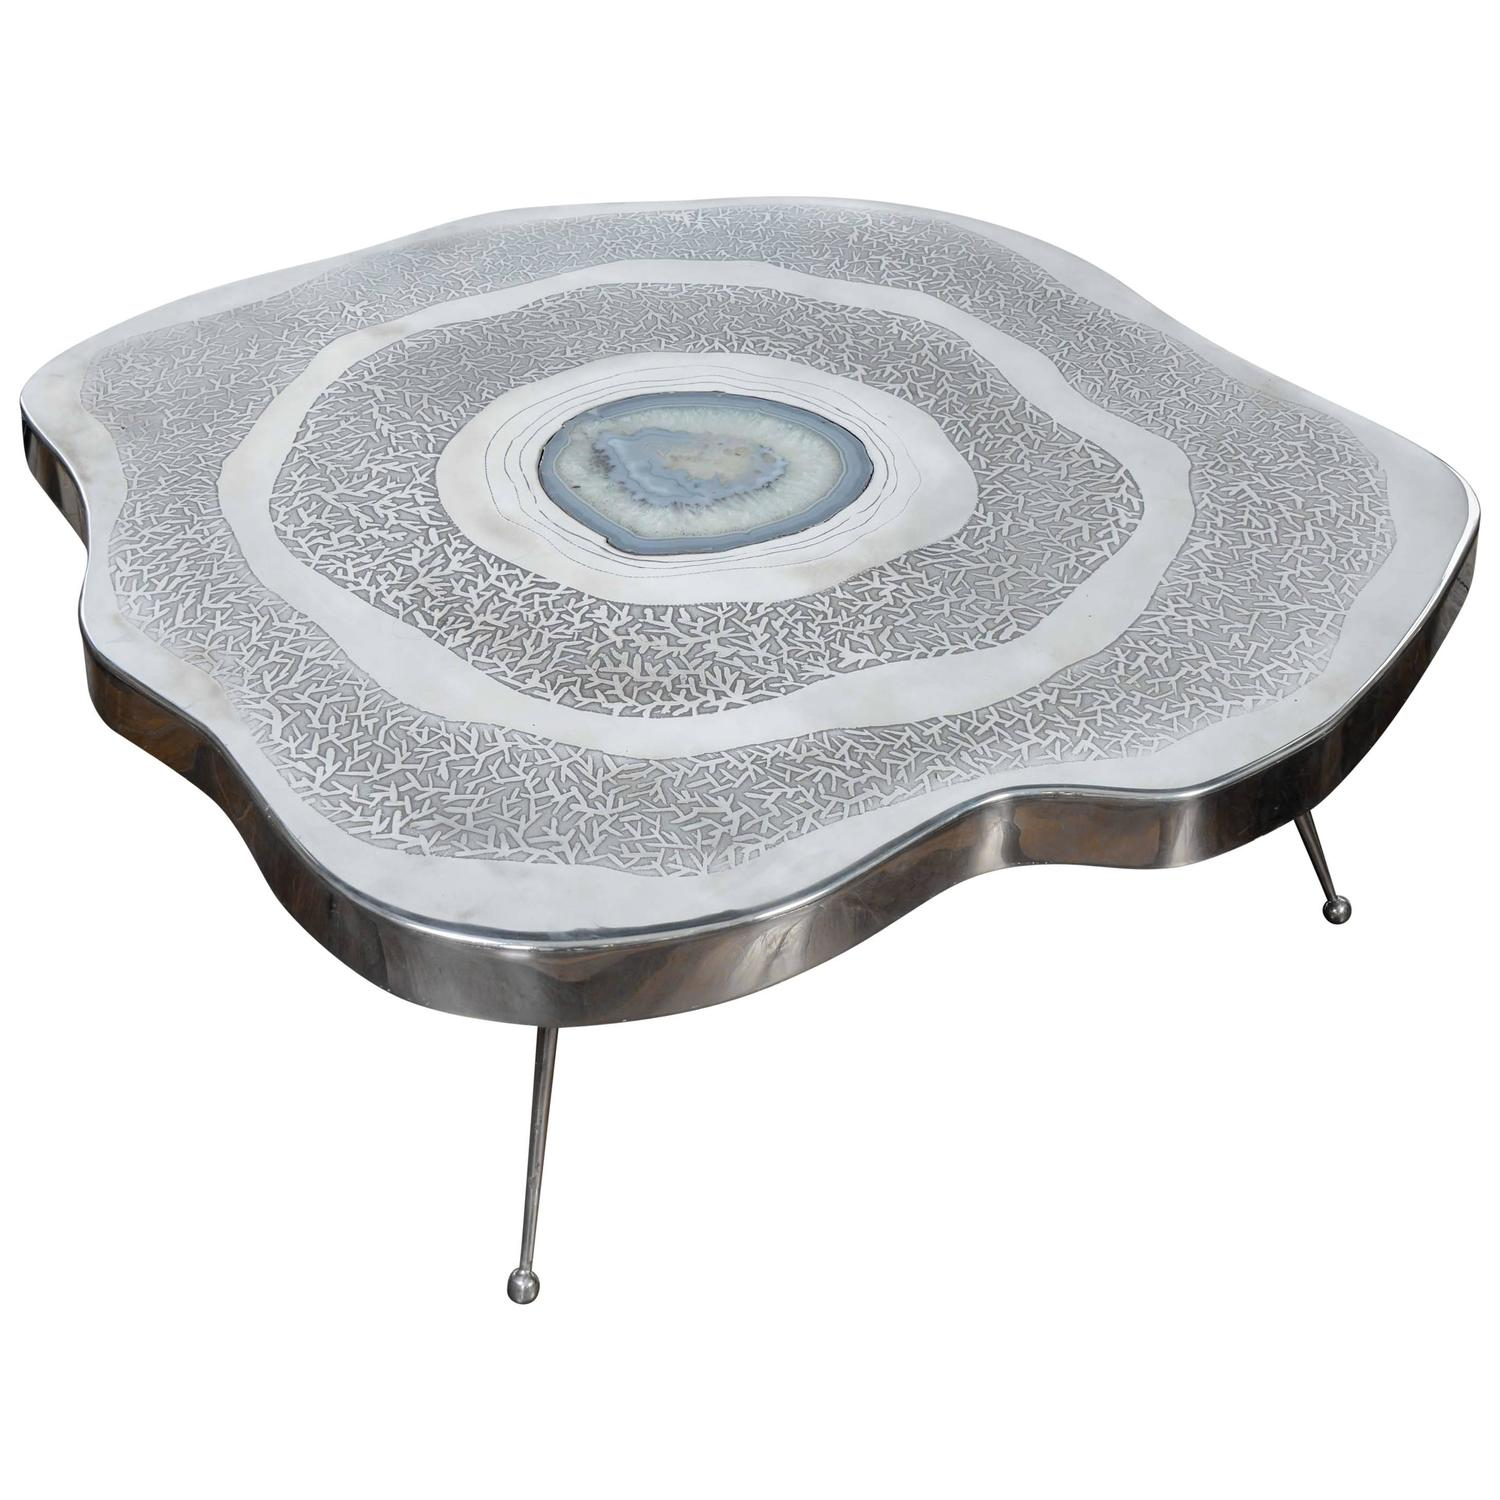 Free Shape Aluminium and Agate Coffee Table For Sale at 1stdibs